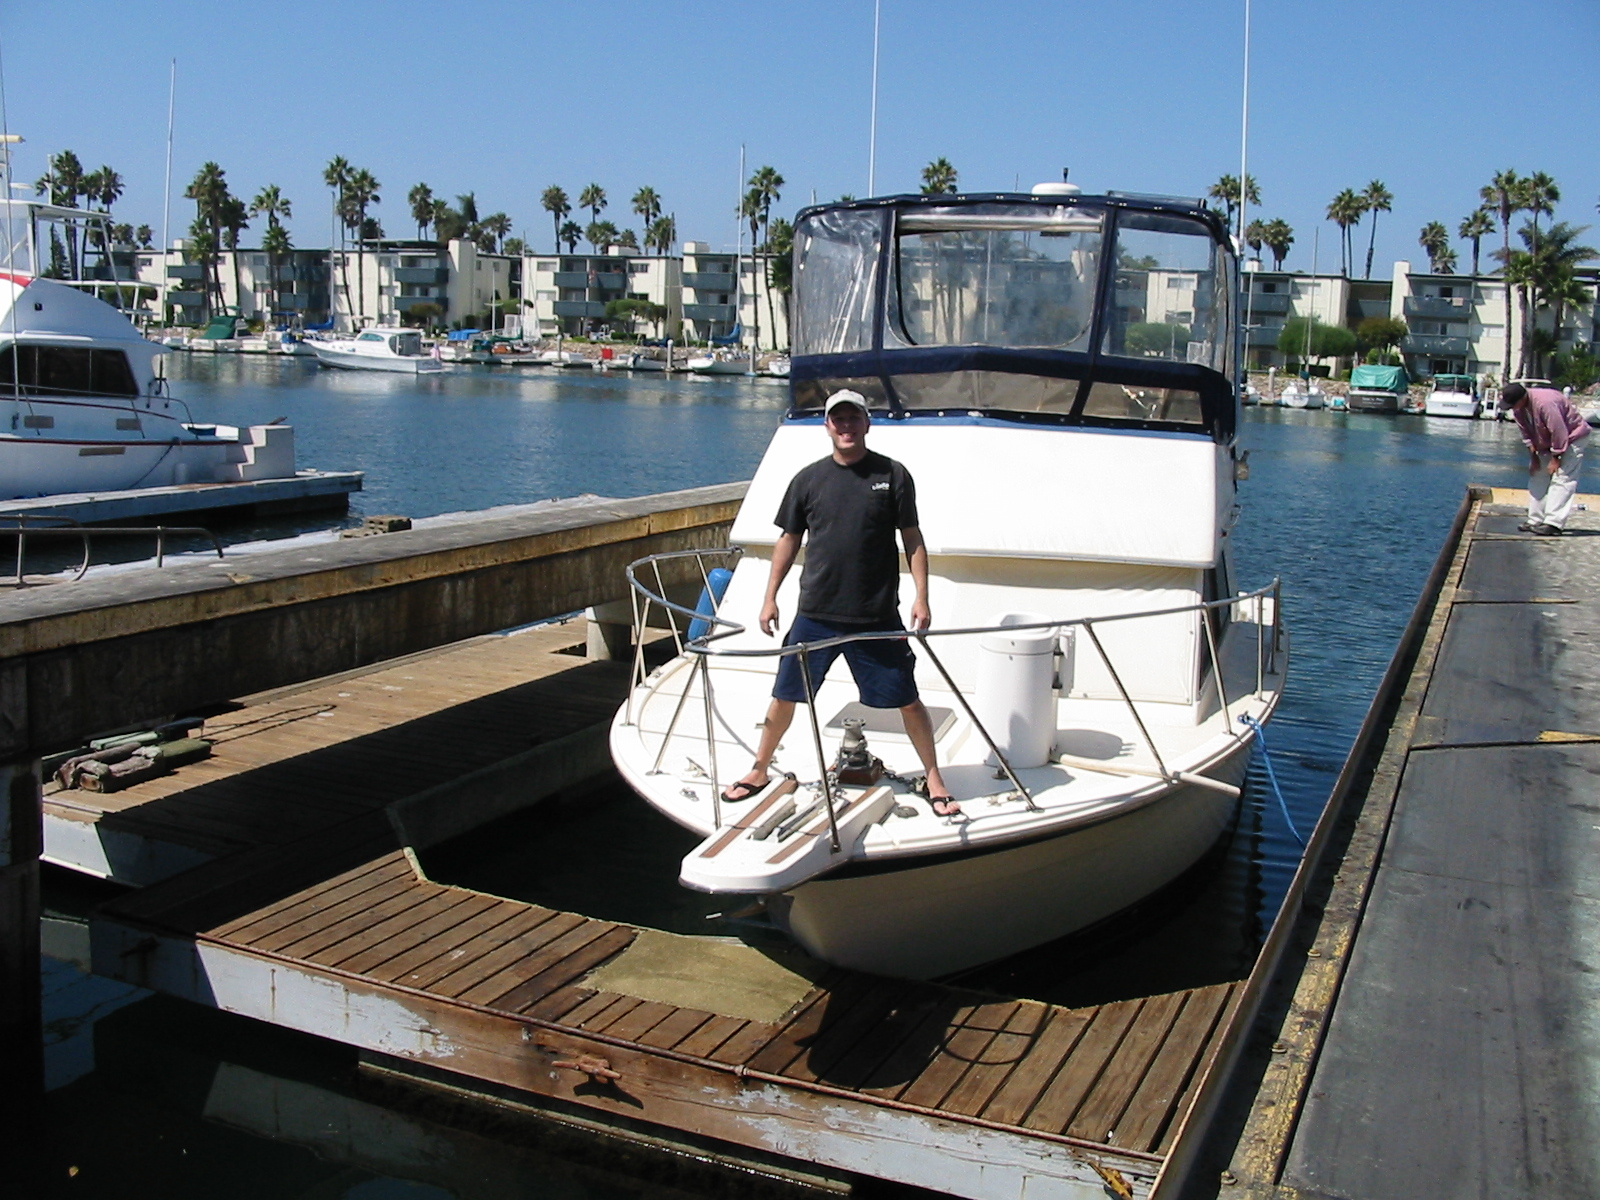 hight resolution of this sportfishing vessel is owned by pat maloney pmaloney bautelaw com in marina del ray ca but is berthed and fished out of san diego close to where